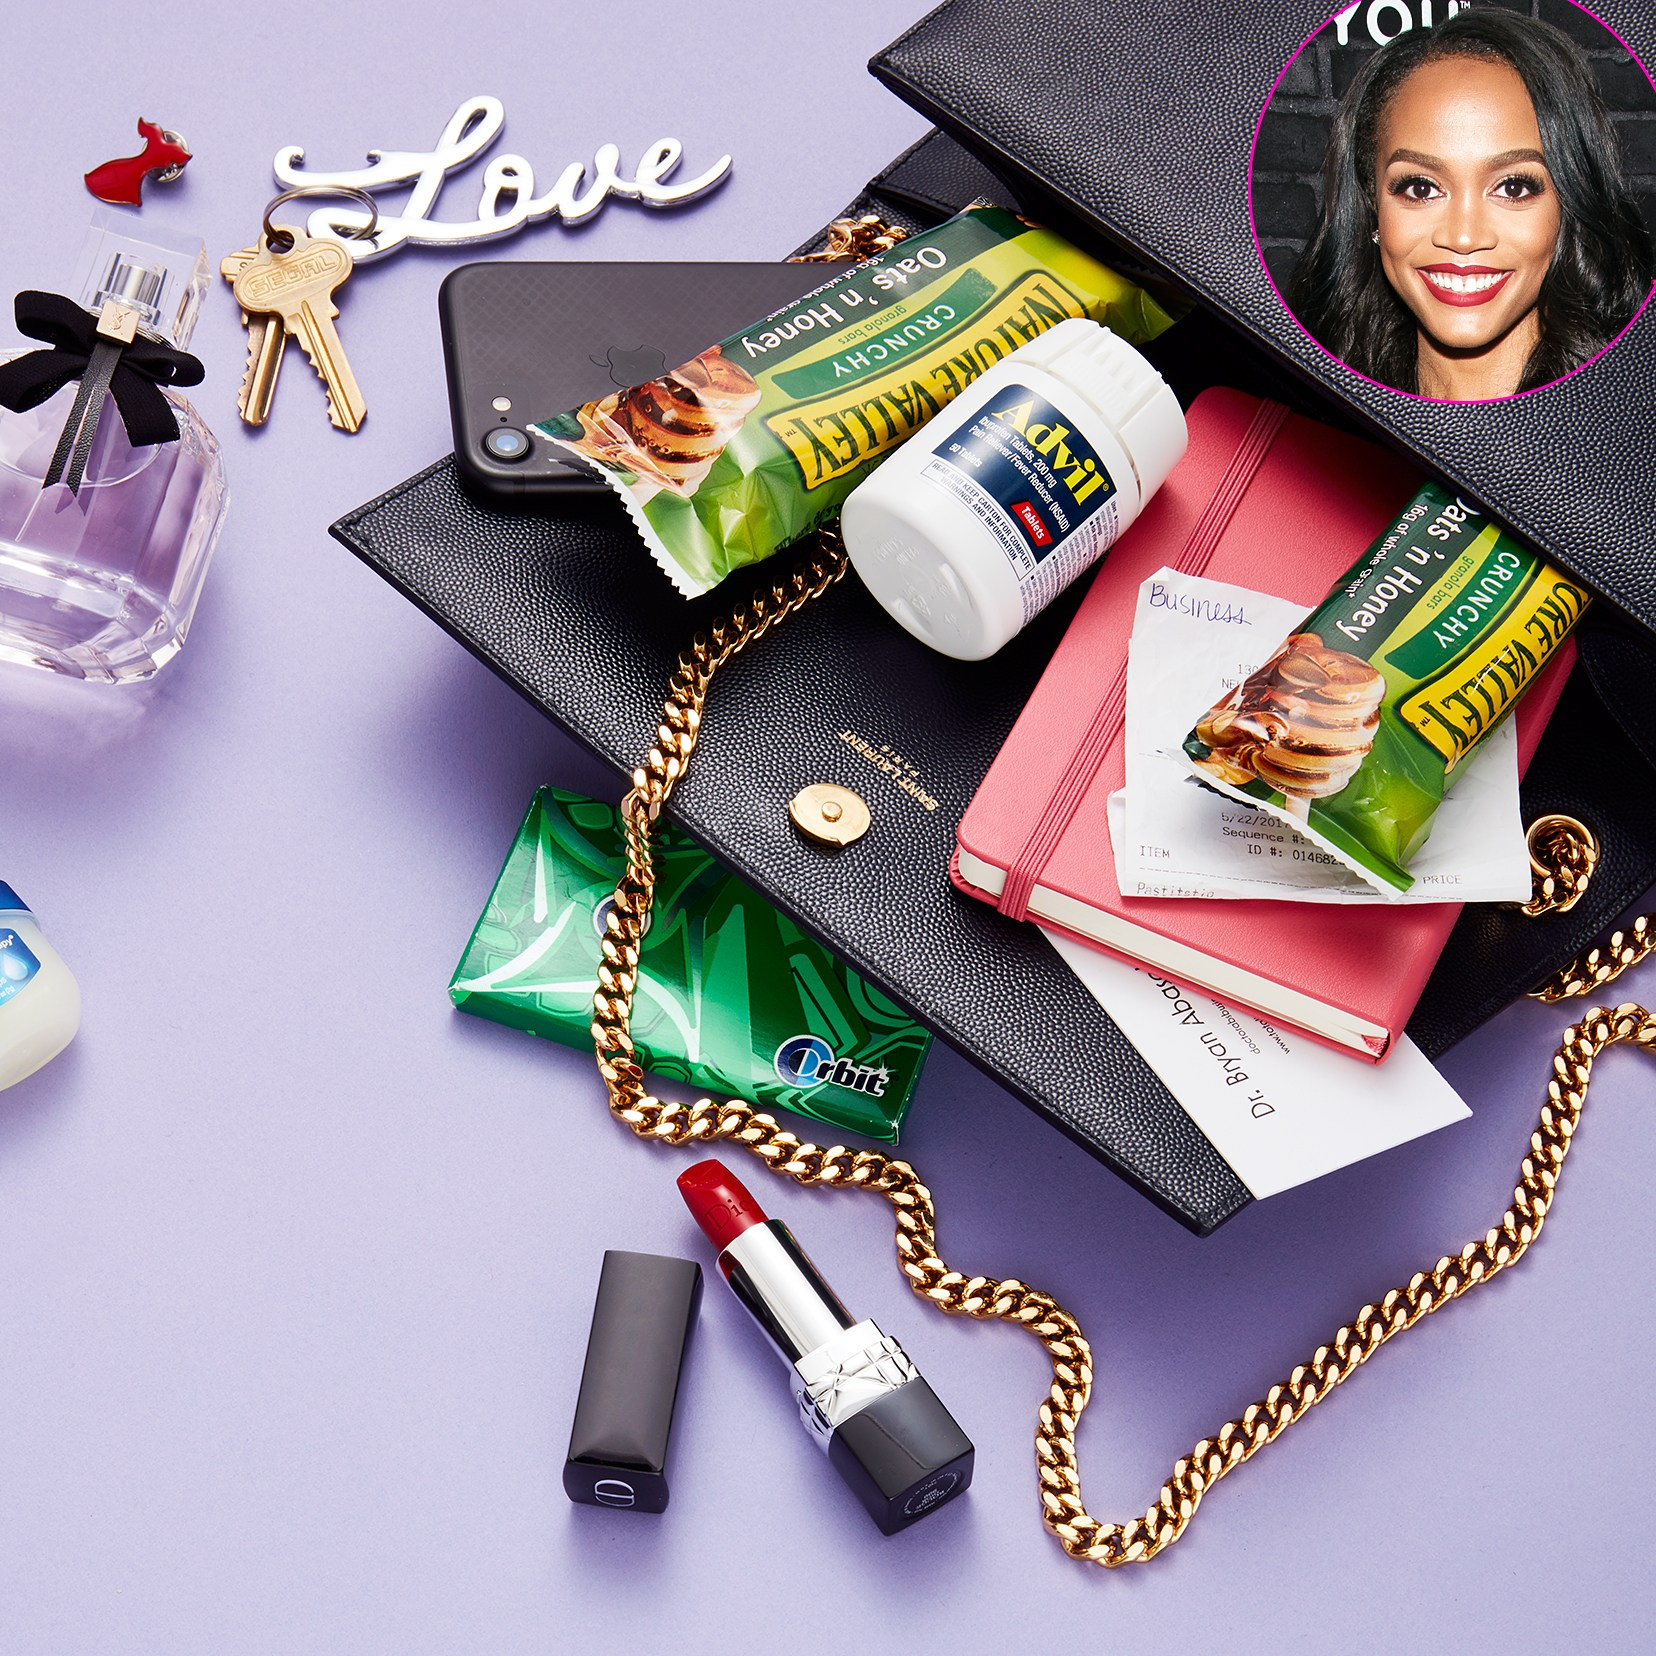 Rachel Lindsay What's In My Bag